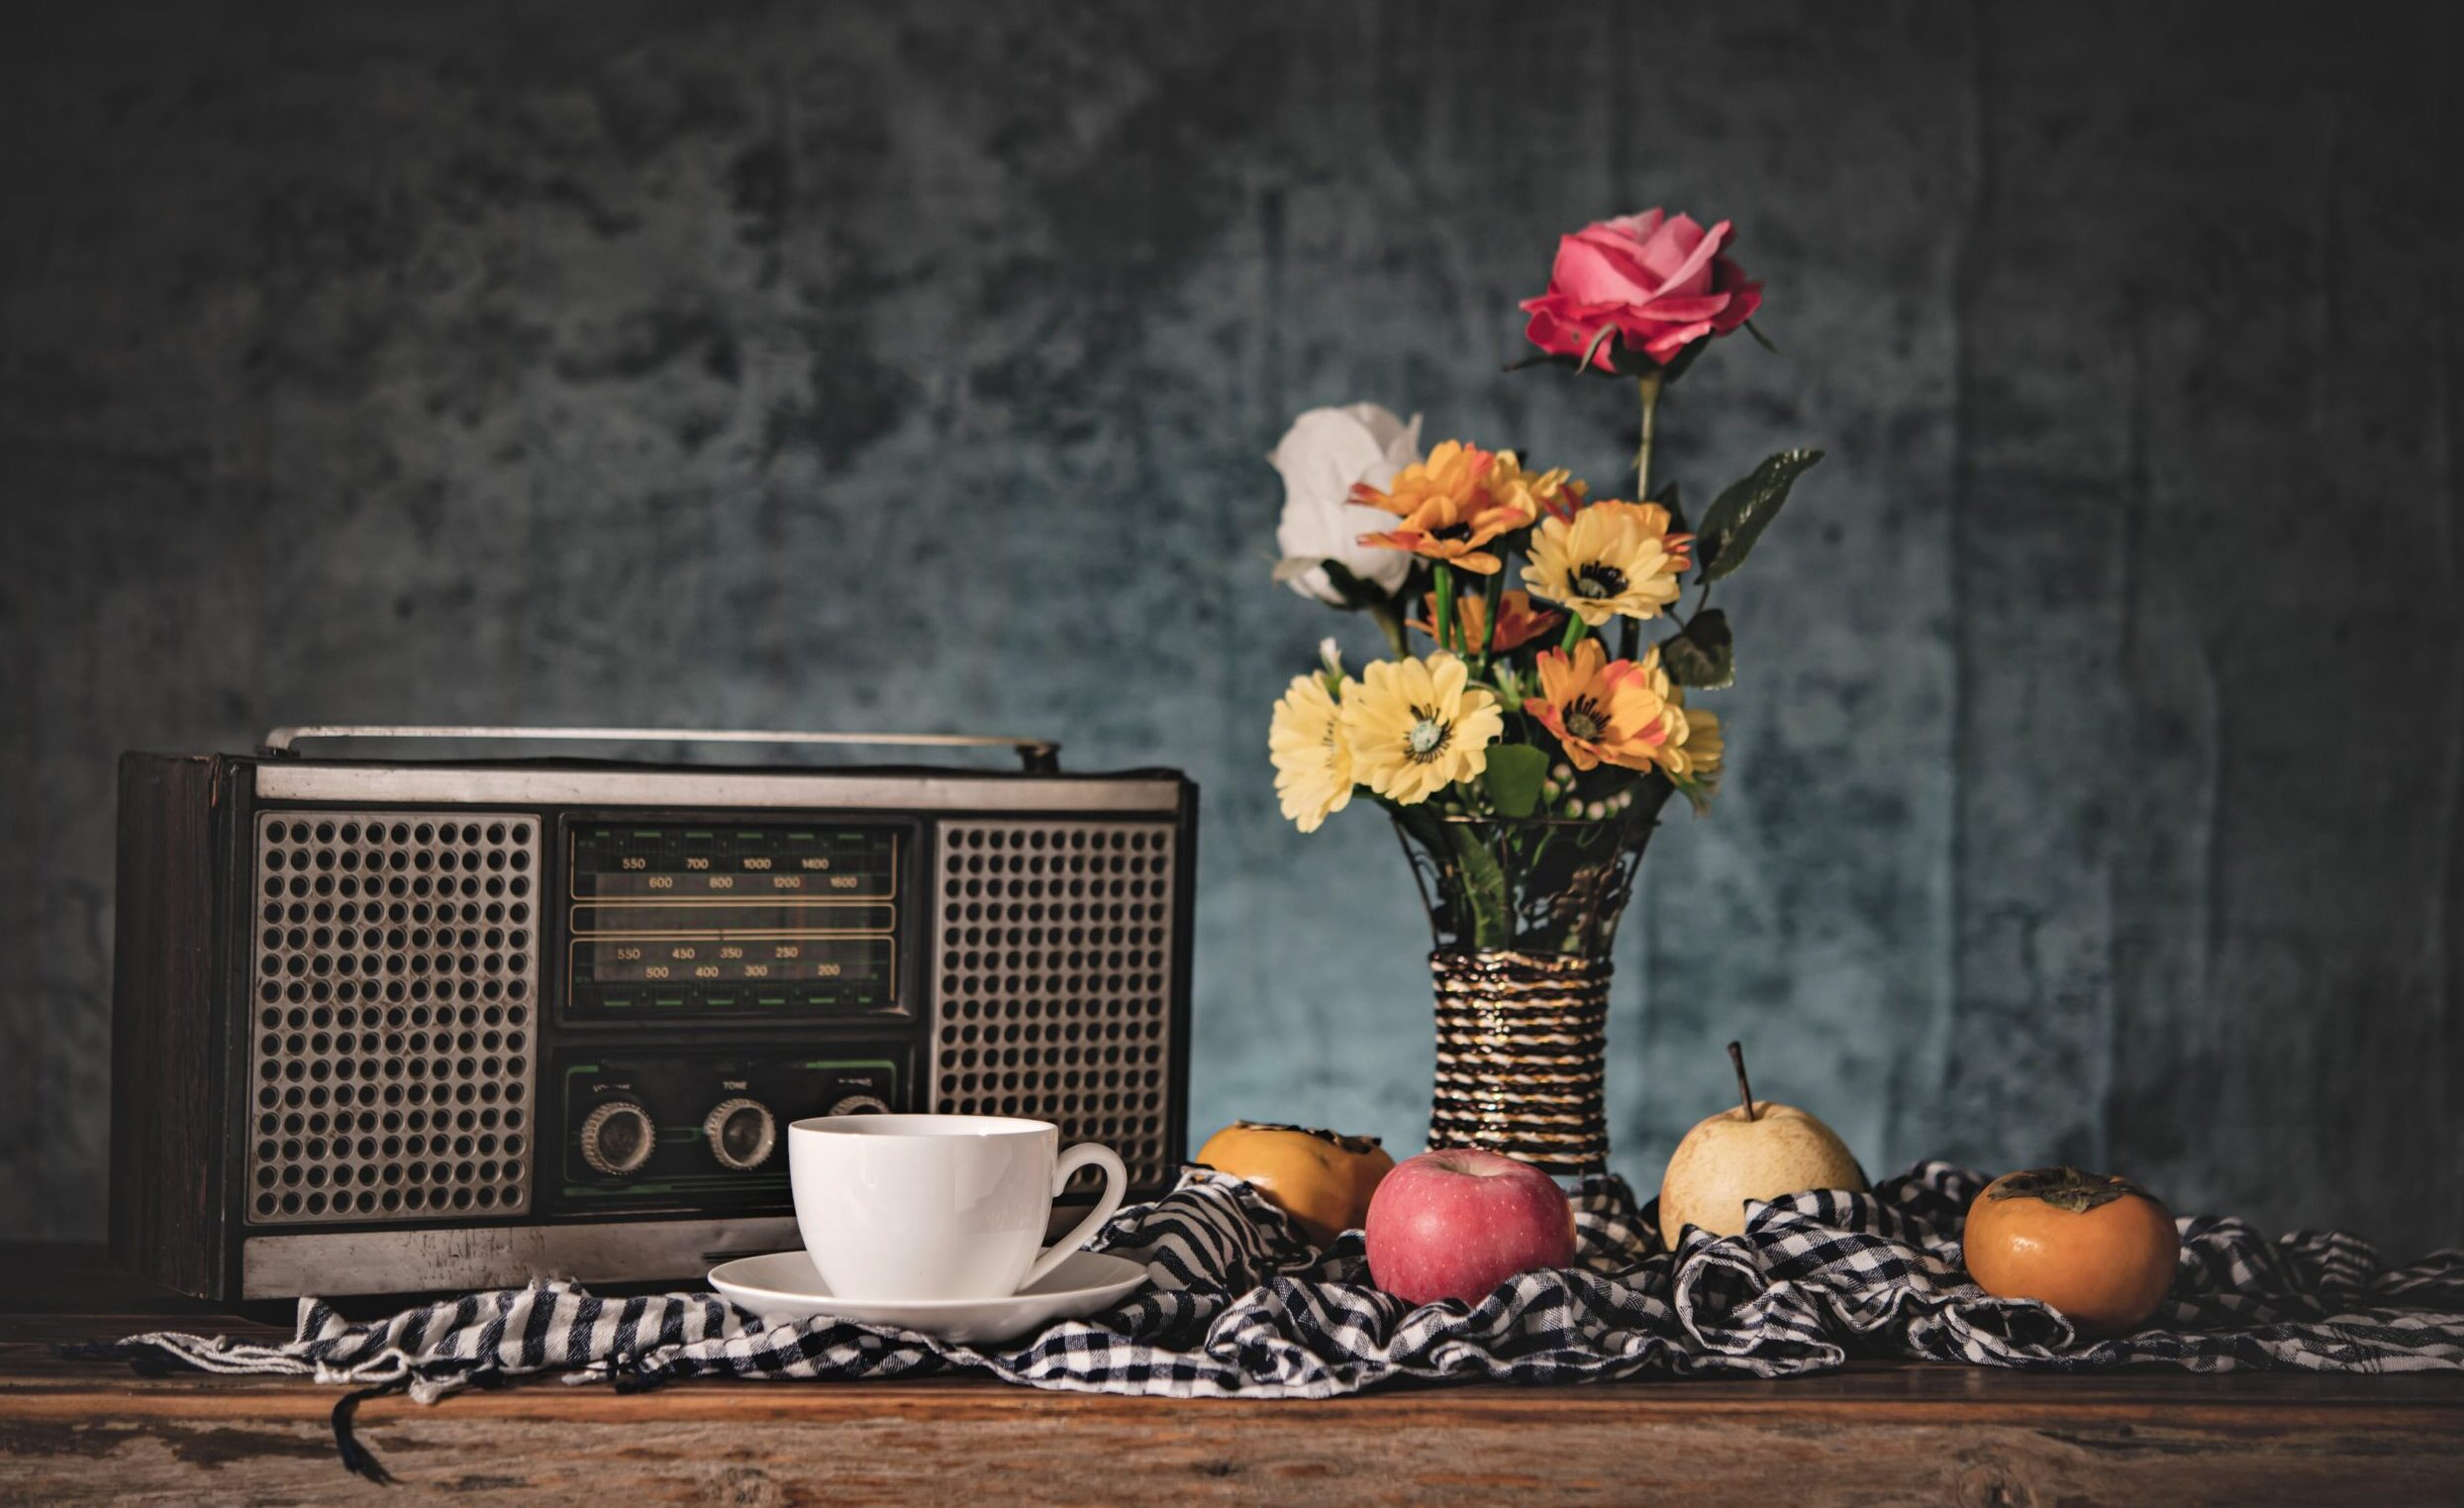 Still Life With Vases, Flowers, Fruit, Coffee Cups And A Retro R